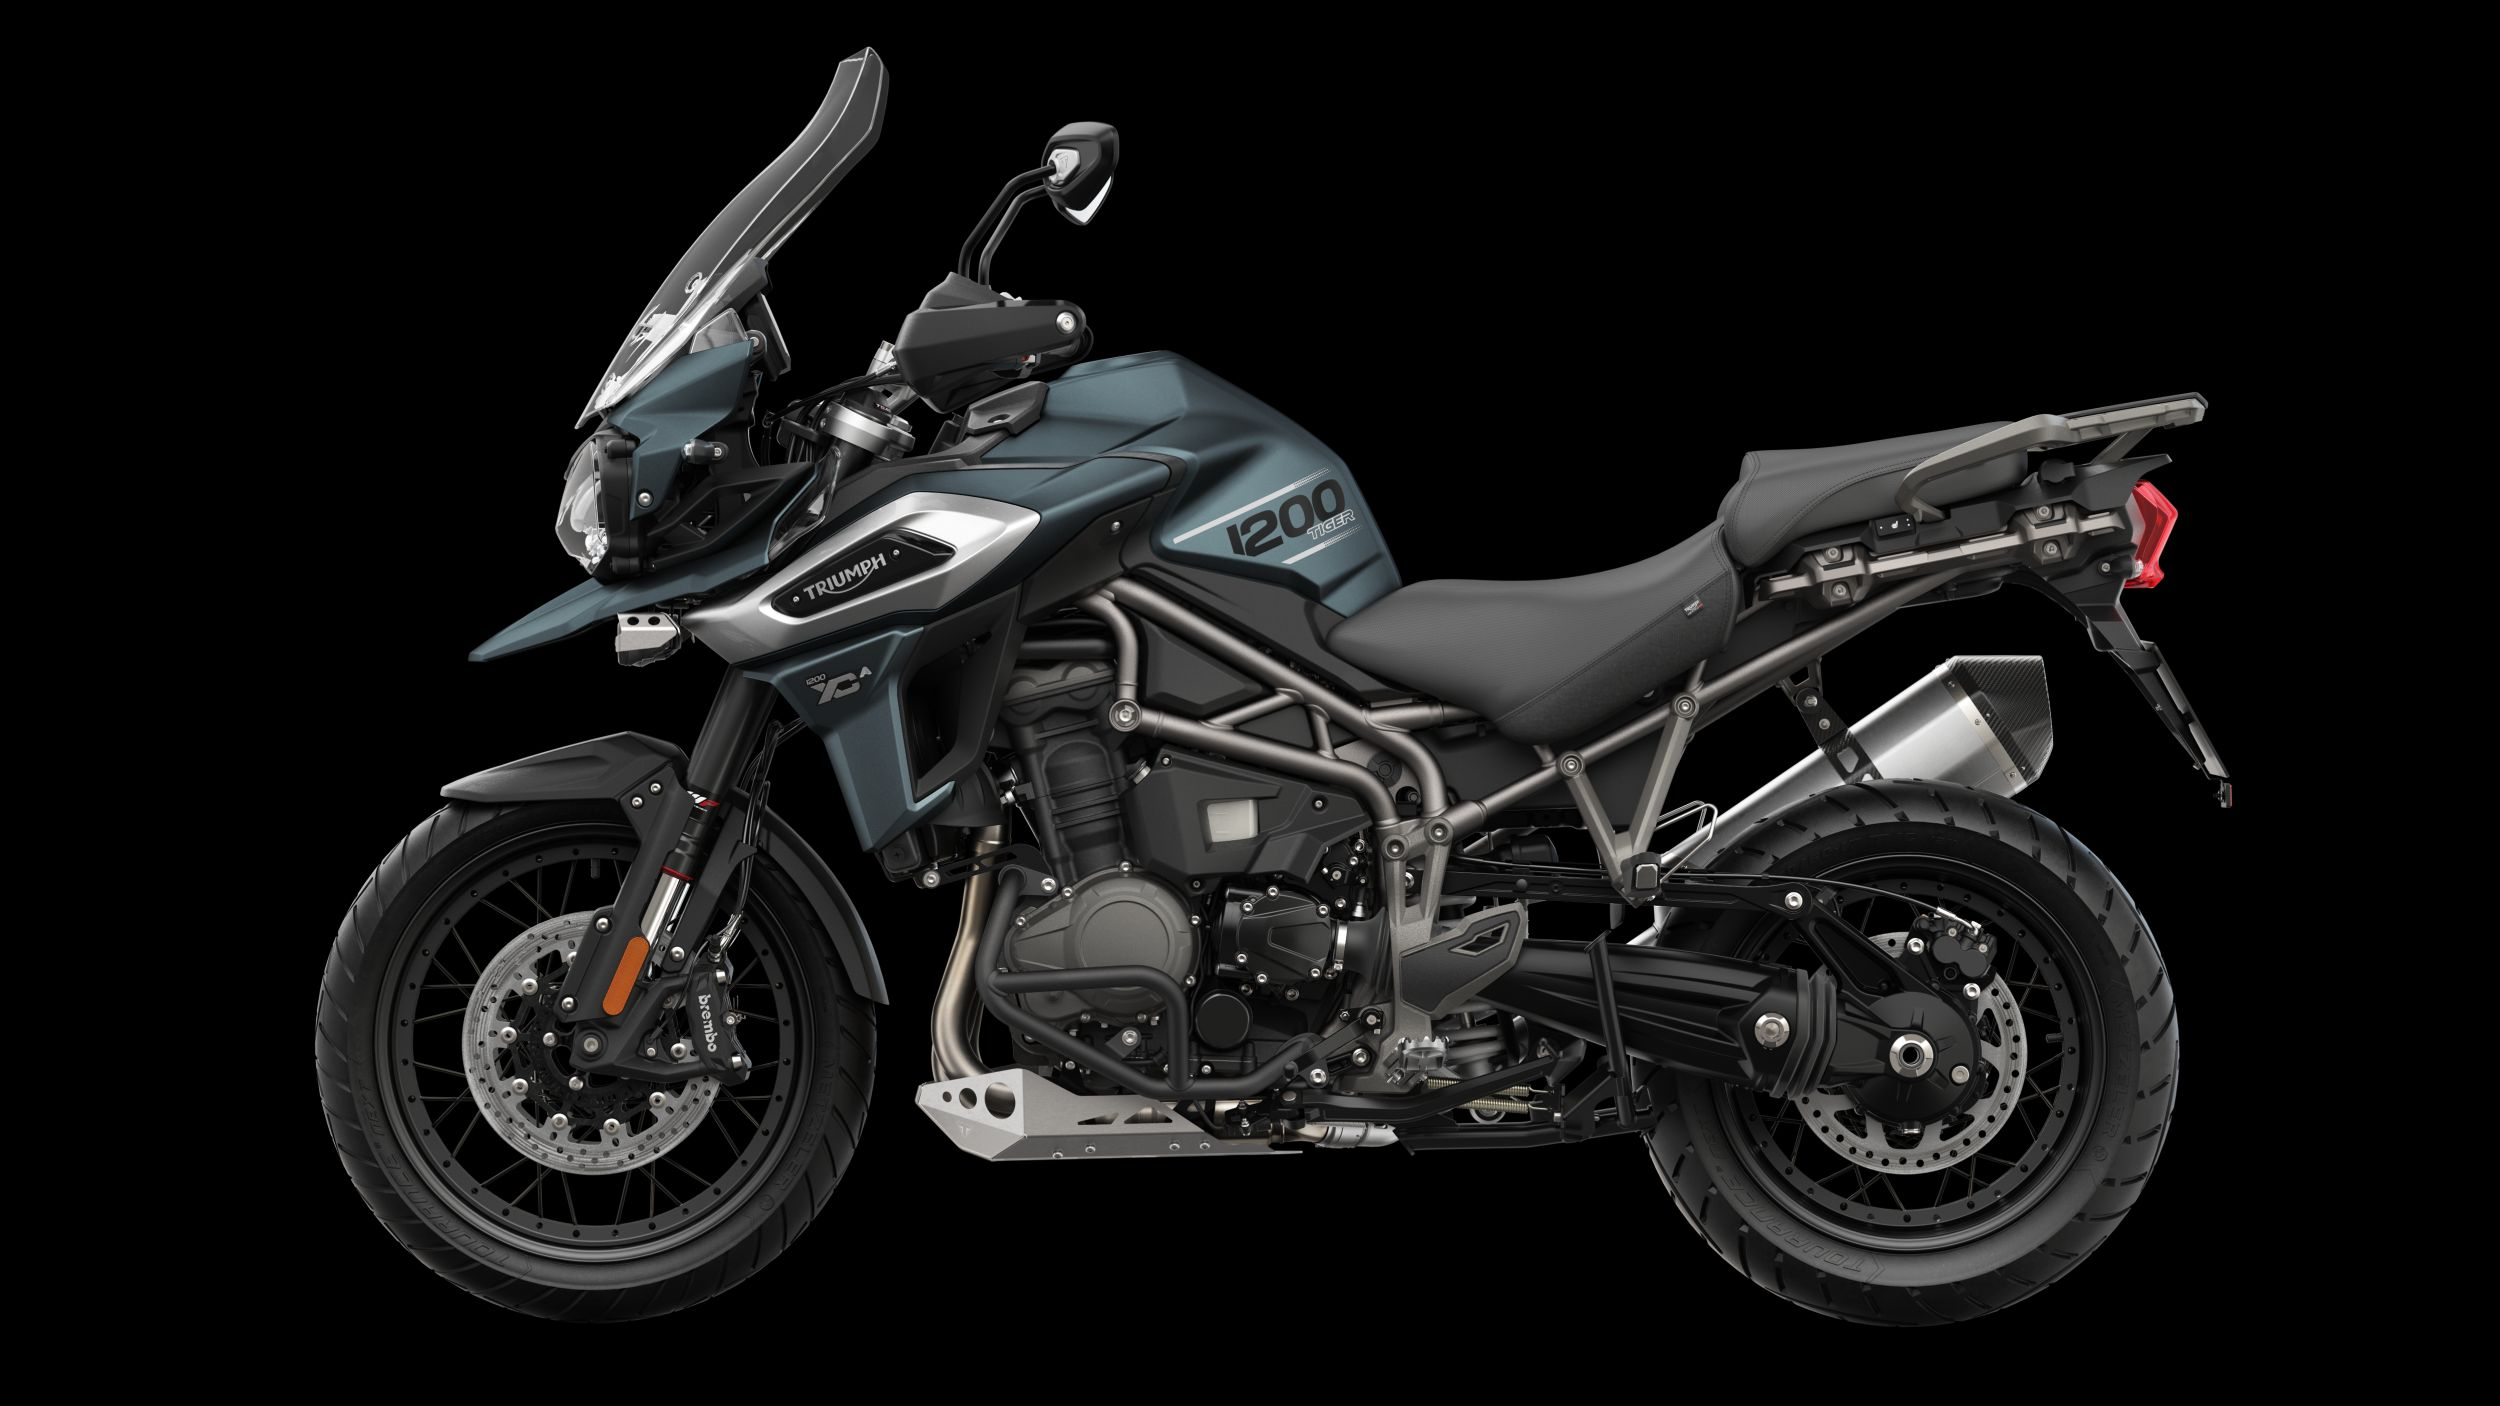 triumph tiger 1200 xca all technical data of the model. Black Bedroom Furniture Sets. Home Design Ideas